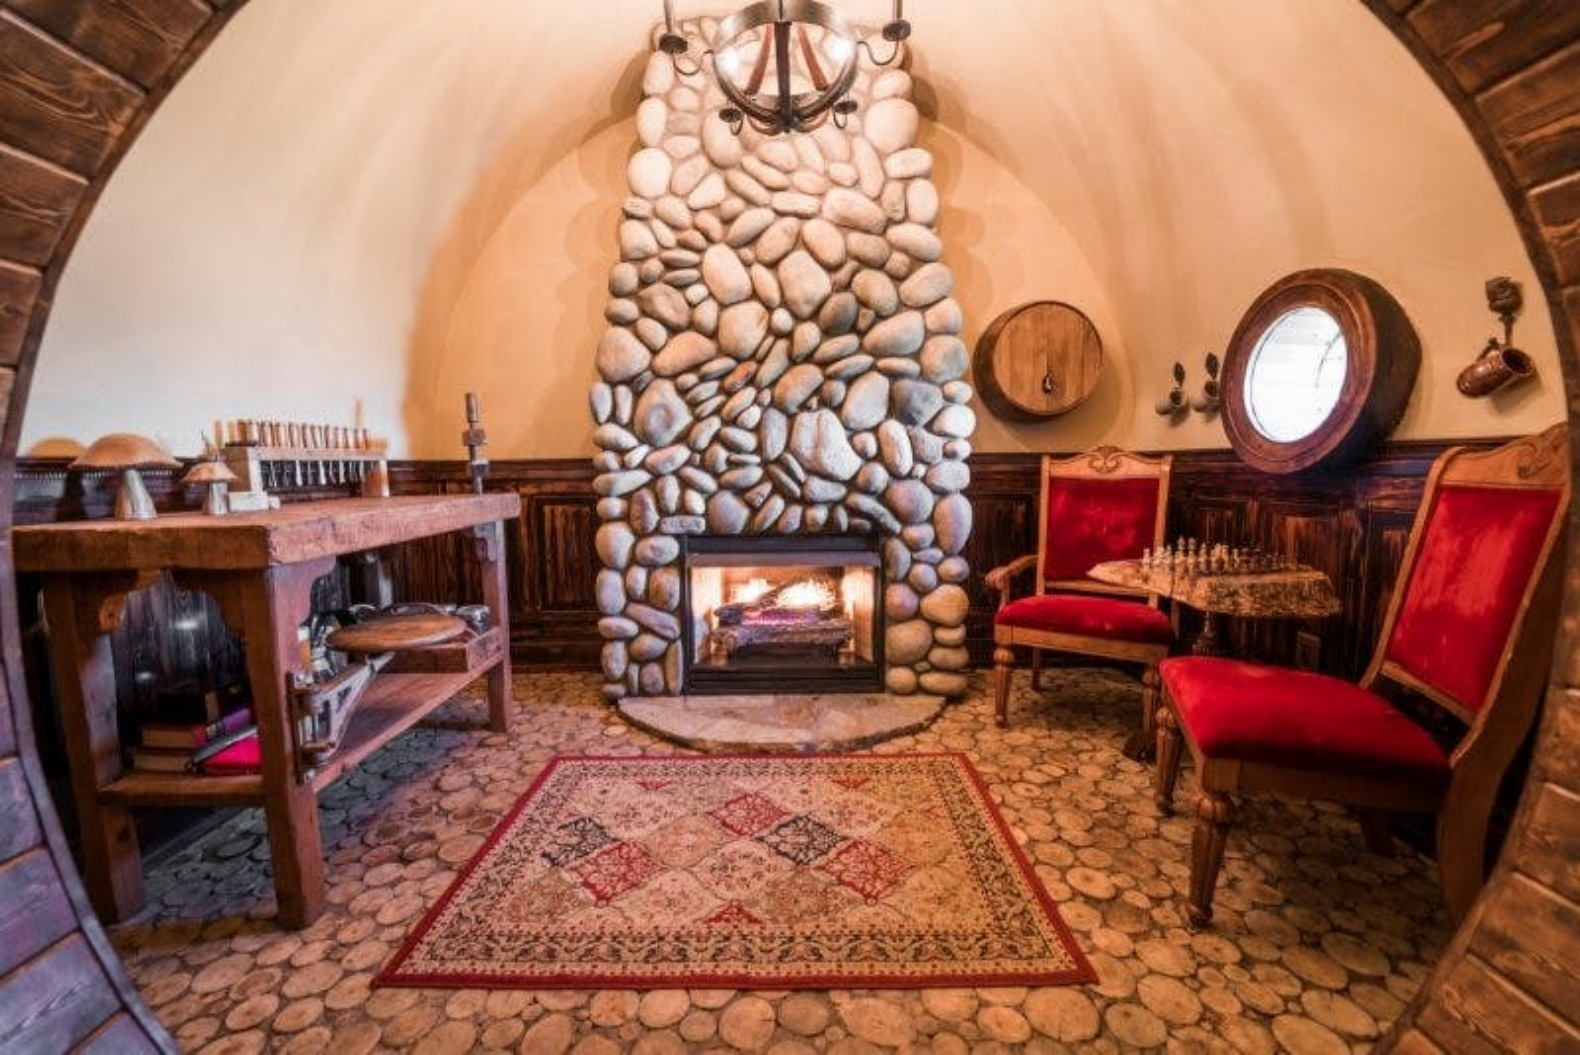 Spend the night in this magical hobbit house tucked into for Hobbit house furniture